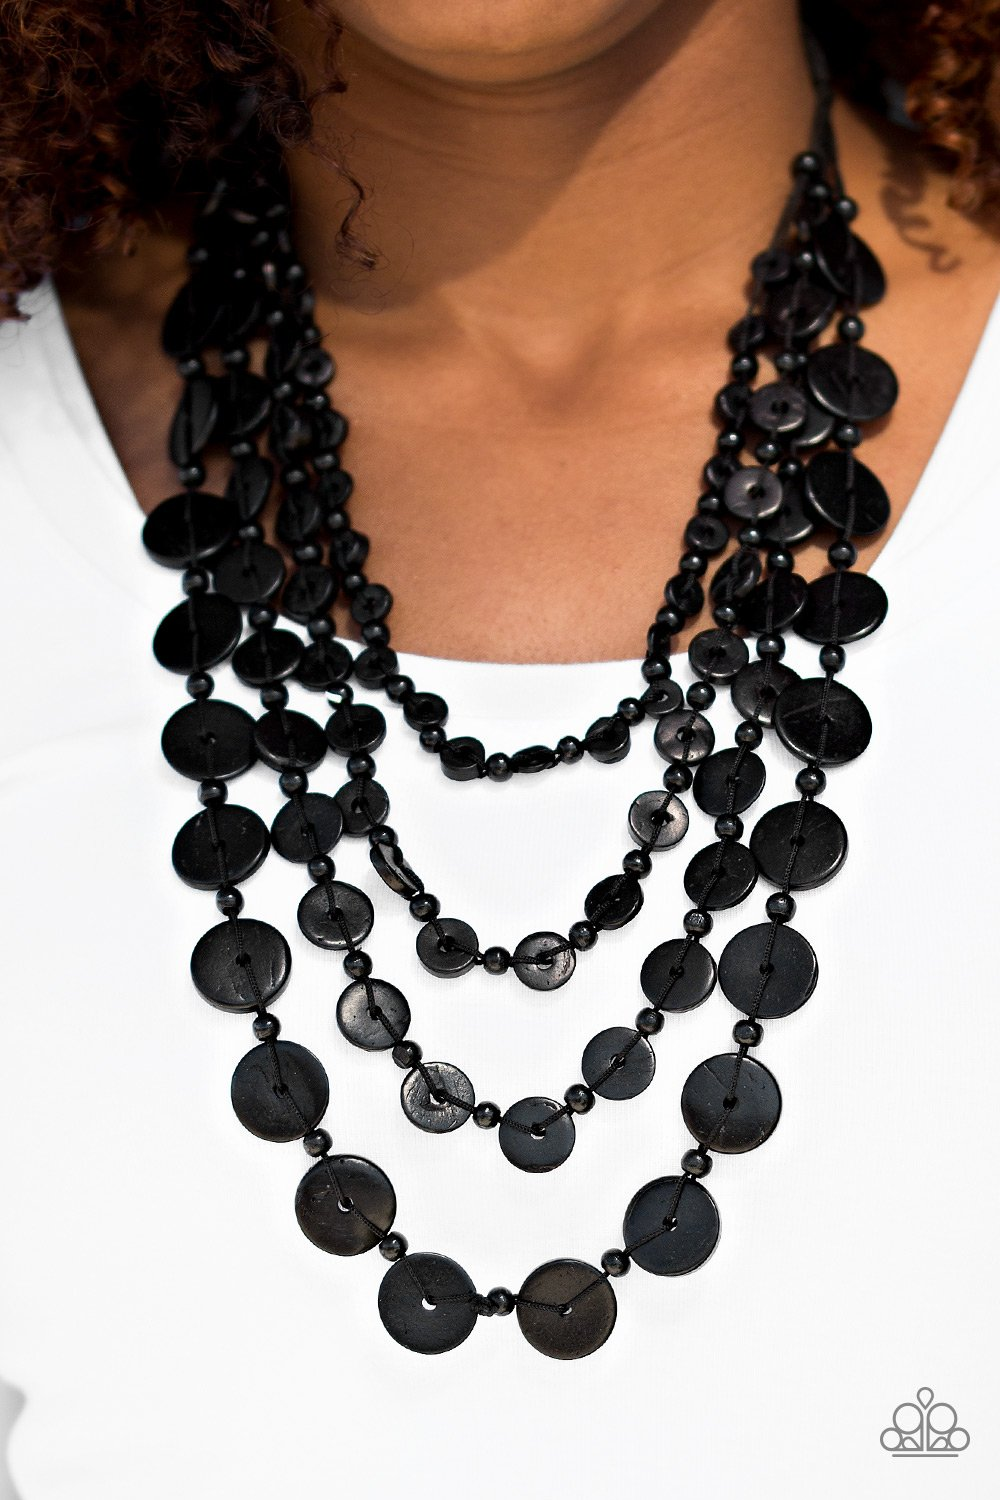 Fiji Flair - Black - Paparazzi Accessories - Pretty Girl Jewels